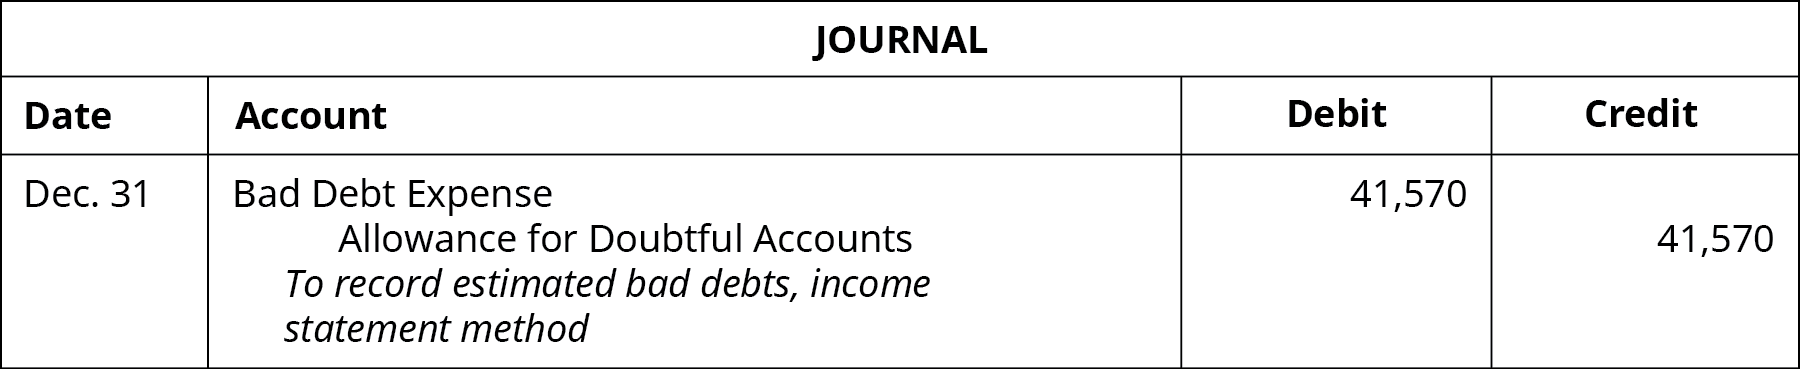 """Journal entry: December 31 Debit Bad Debt Expense 41,570, credit Allowance for Doubtful Accounts 41,570. Explanation: """"To record estimated bad debts, income statement method."""""""